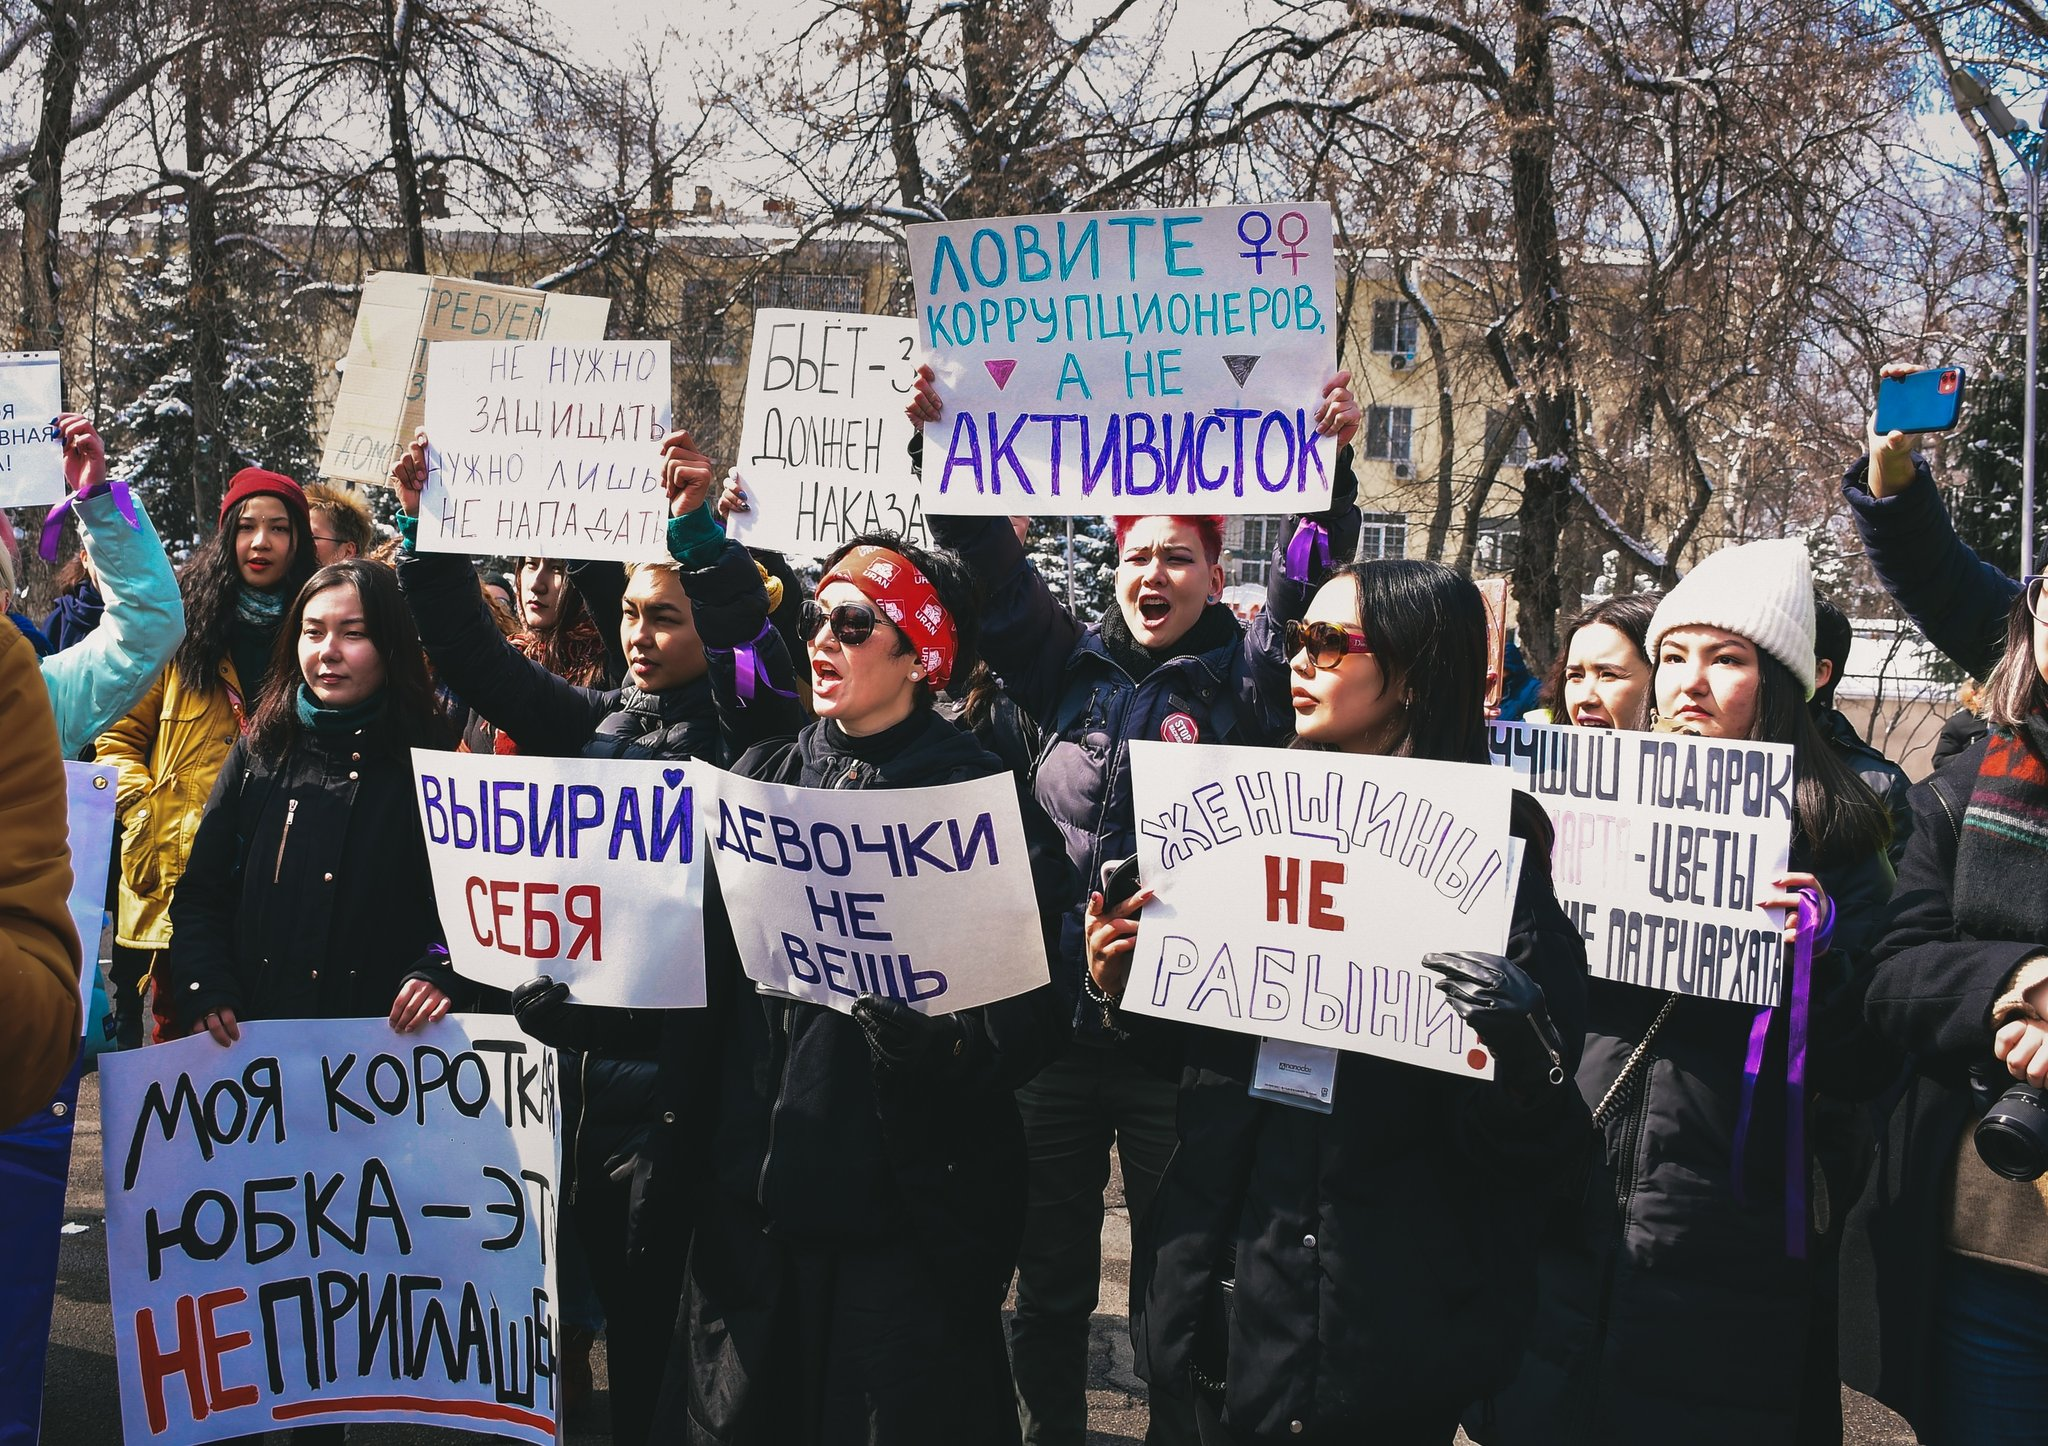 Kazakhstan activists sentenced for involvement with banned political groups